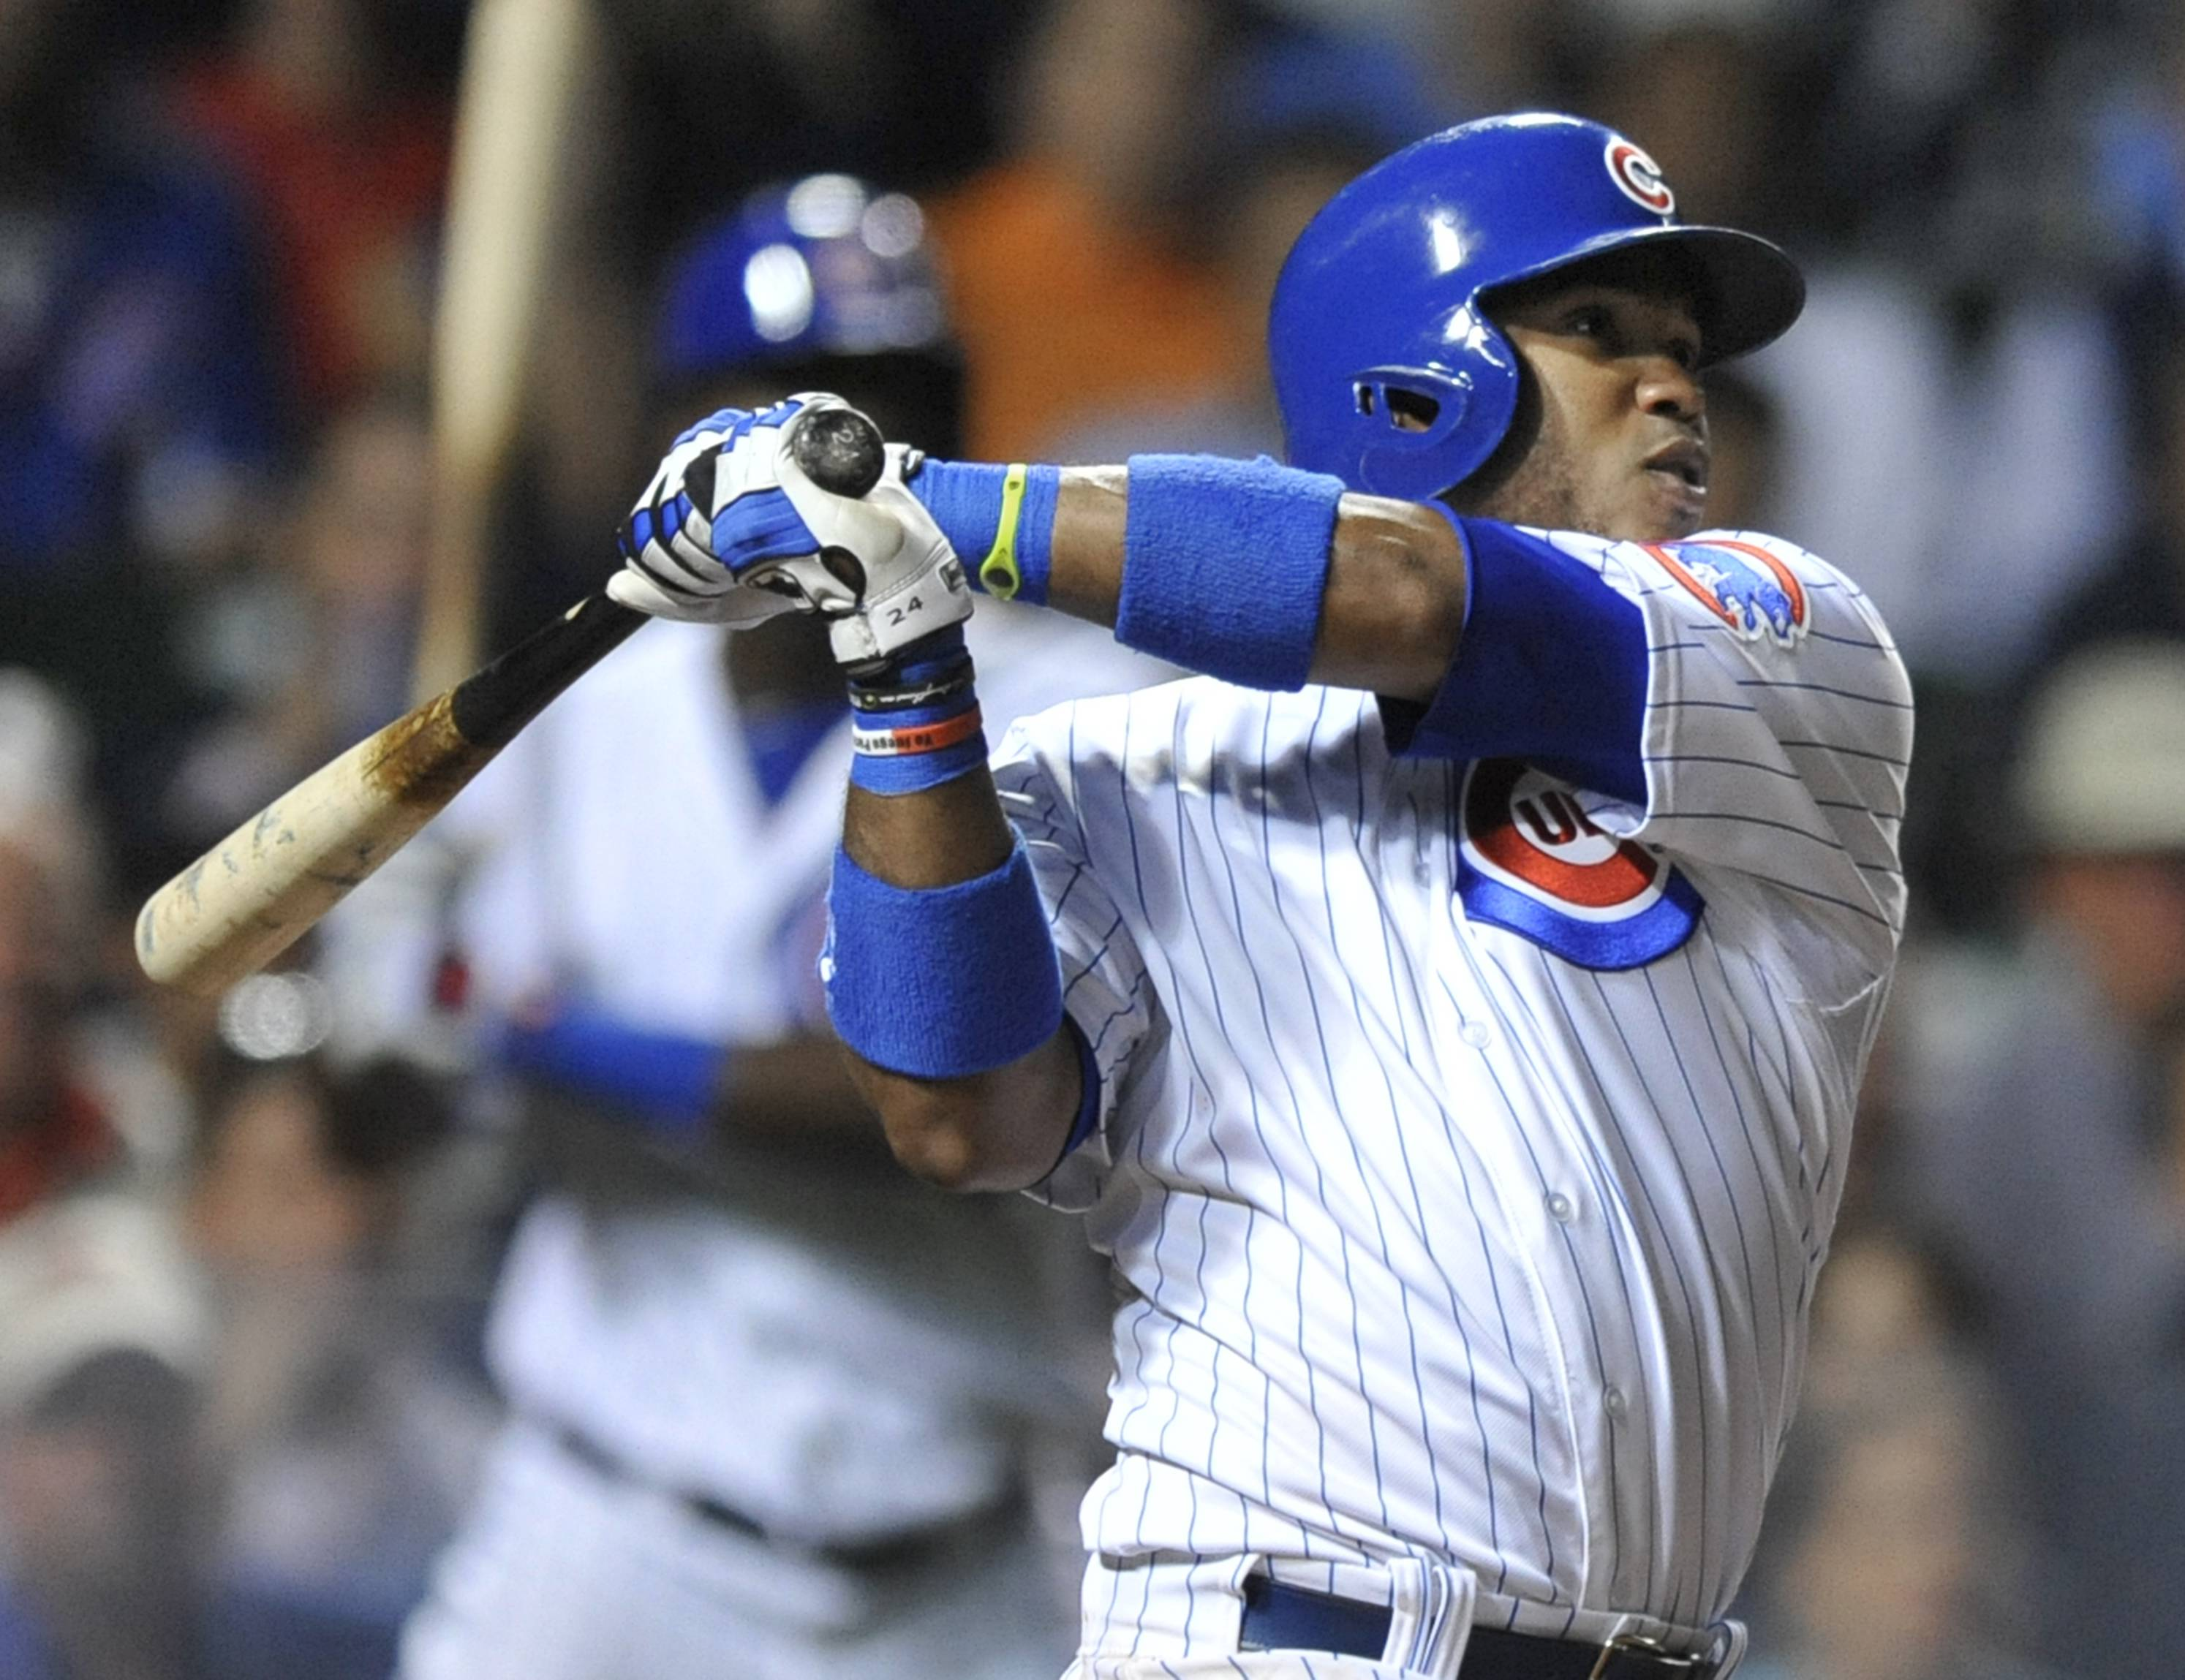 The Cubs' Luis Valbuena watches his 2-run, game-tying homer in the eighth inning Wednesday night. The Rockies won 6-4 in 10 innings.